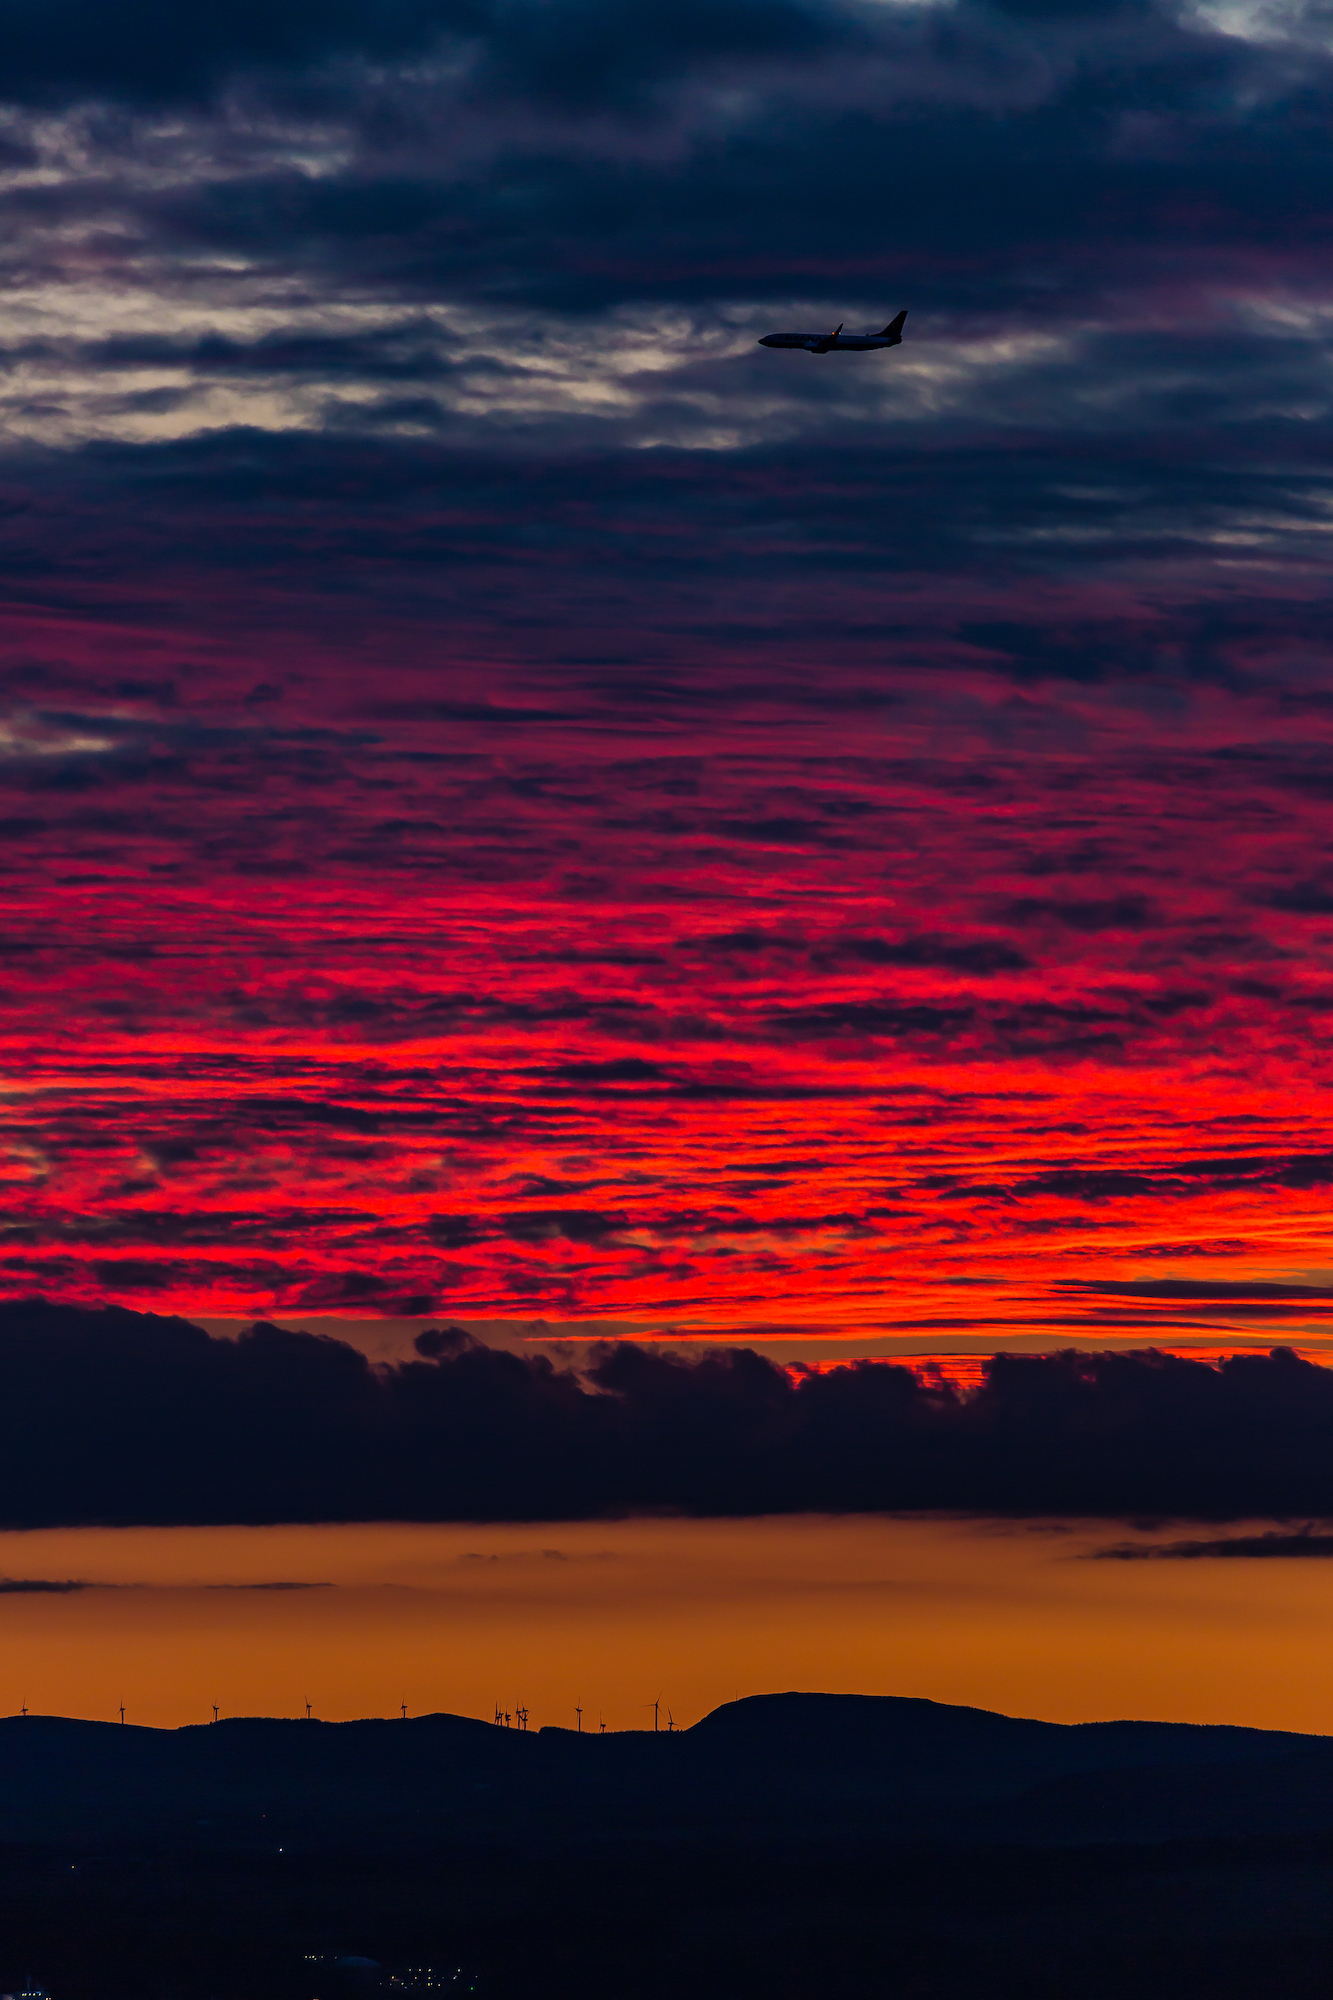 (608) Fiery Red Sunset over Fife, as Plane lands over Firth of Forth for Edinburgh Airport, Edinburgh, Scotland. Copyright David Wheater.jpg